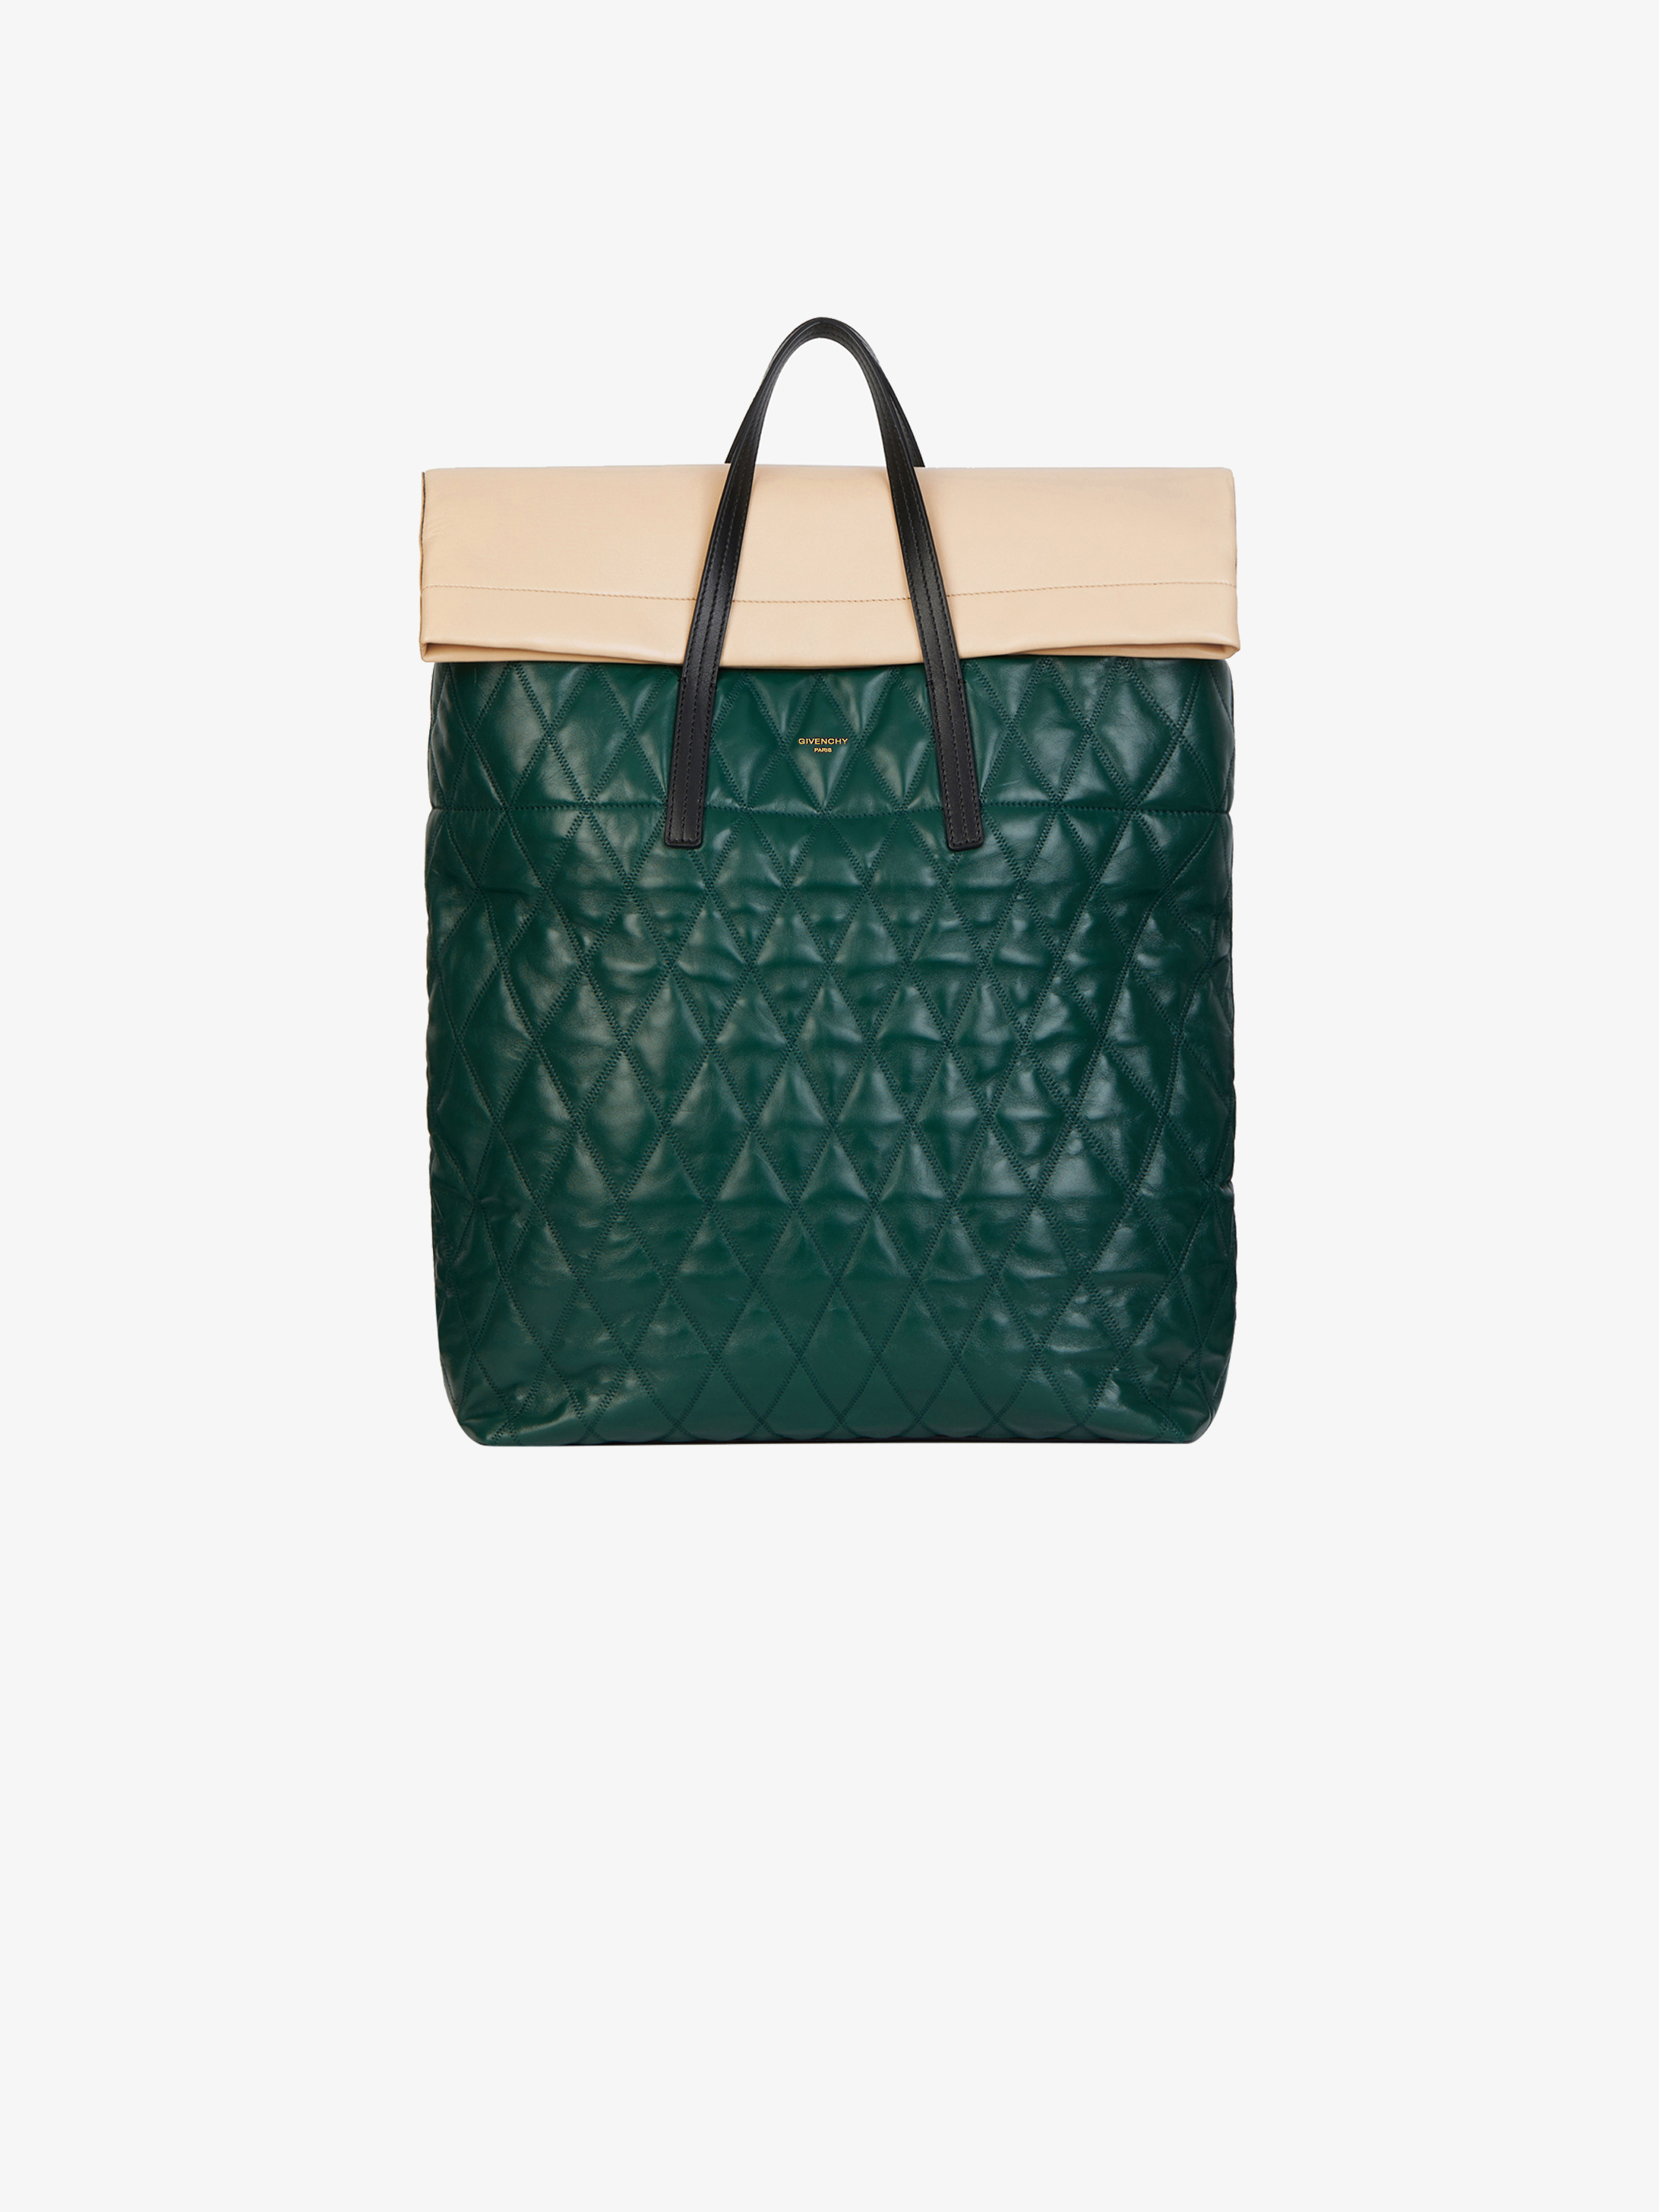 Jaw shopper in diamond quilted leather